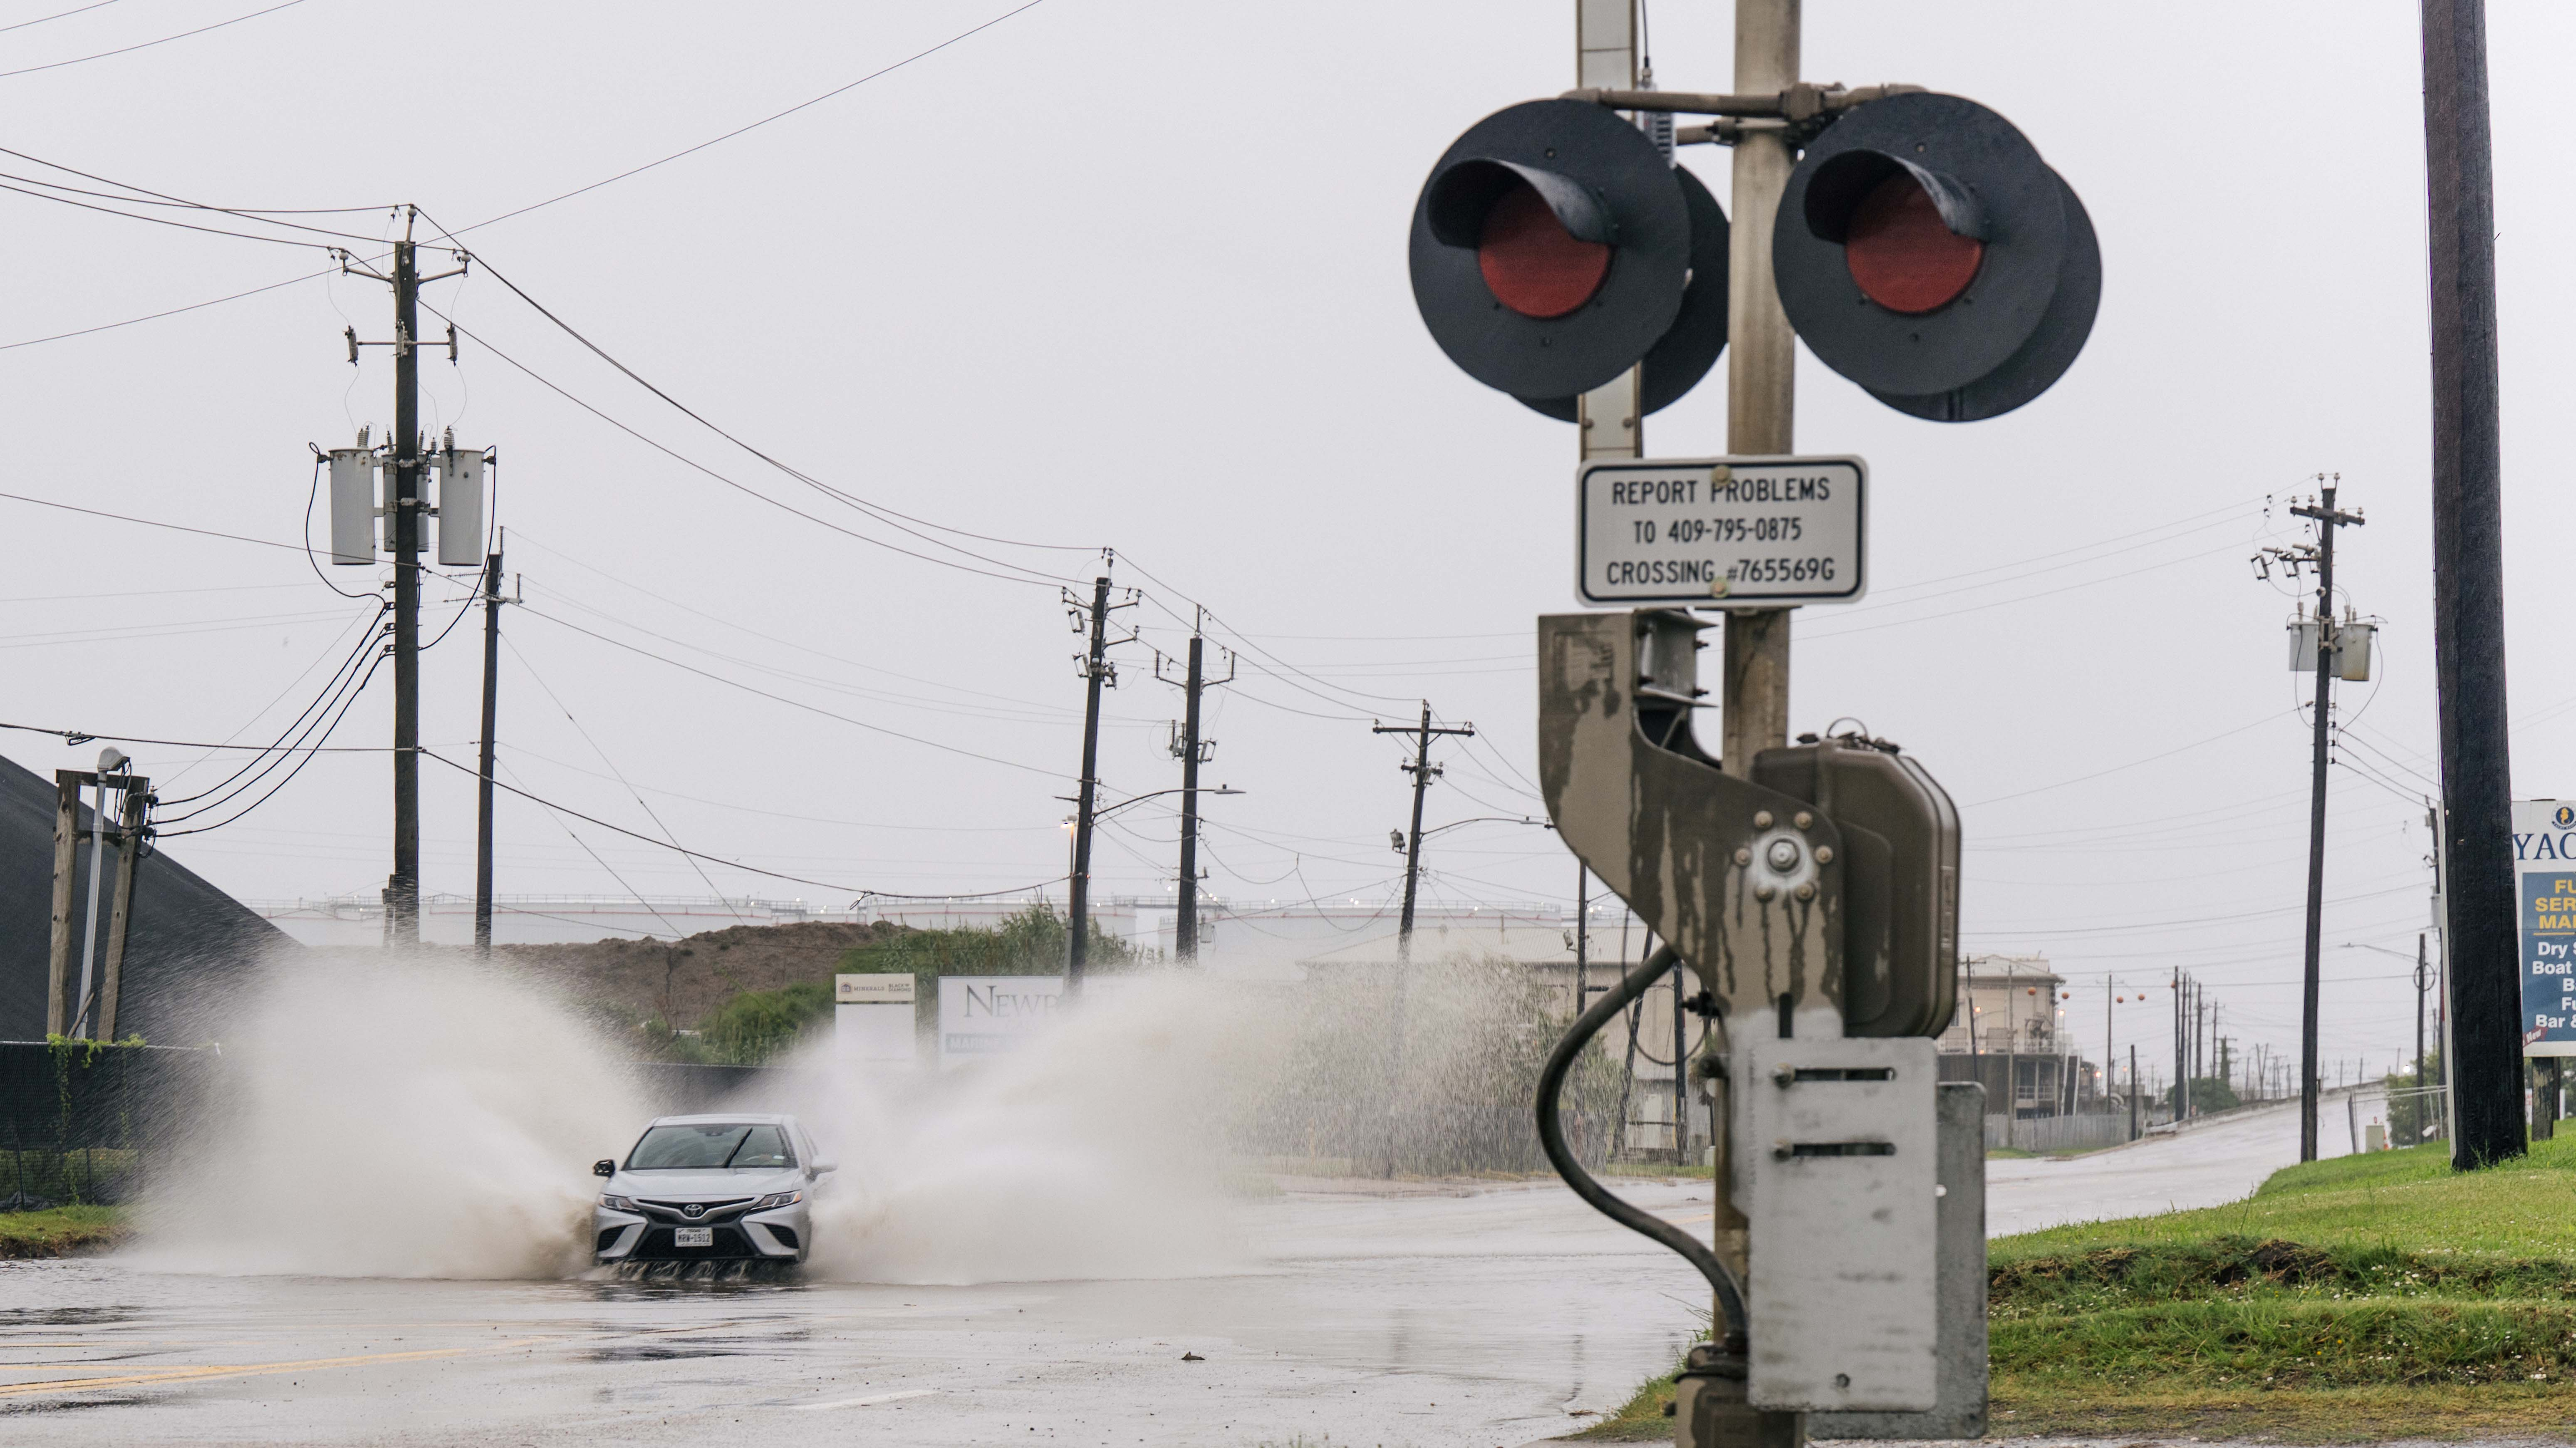 Nicholas Live Updates: Texas and Louisiana Declare State of Emergency, Flights Canceled, Schools Closed